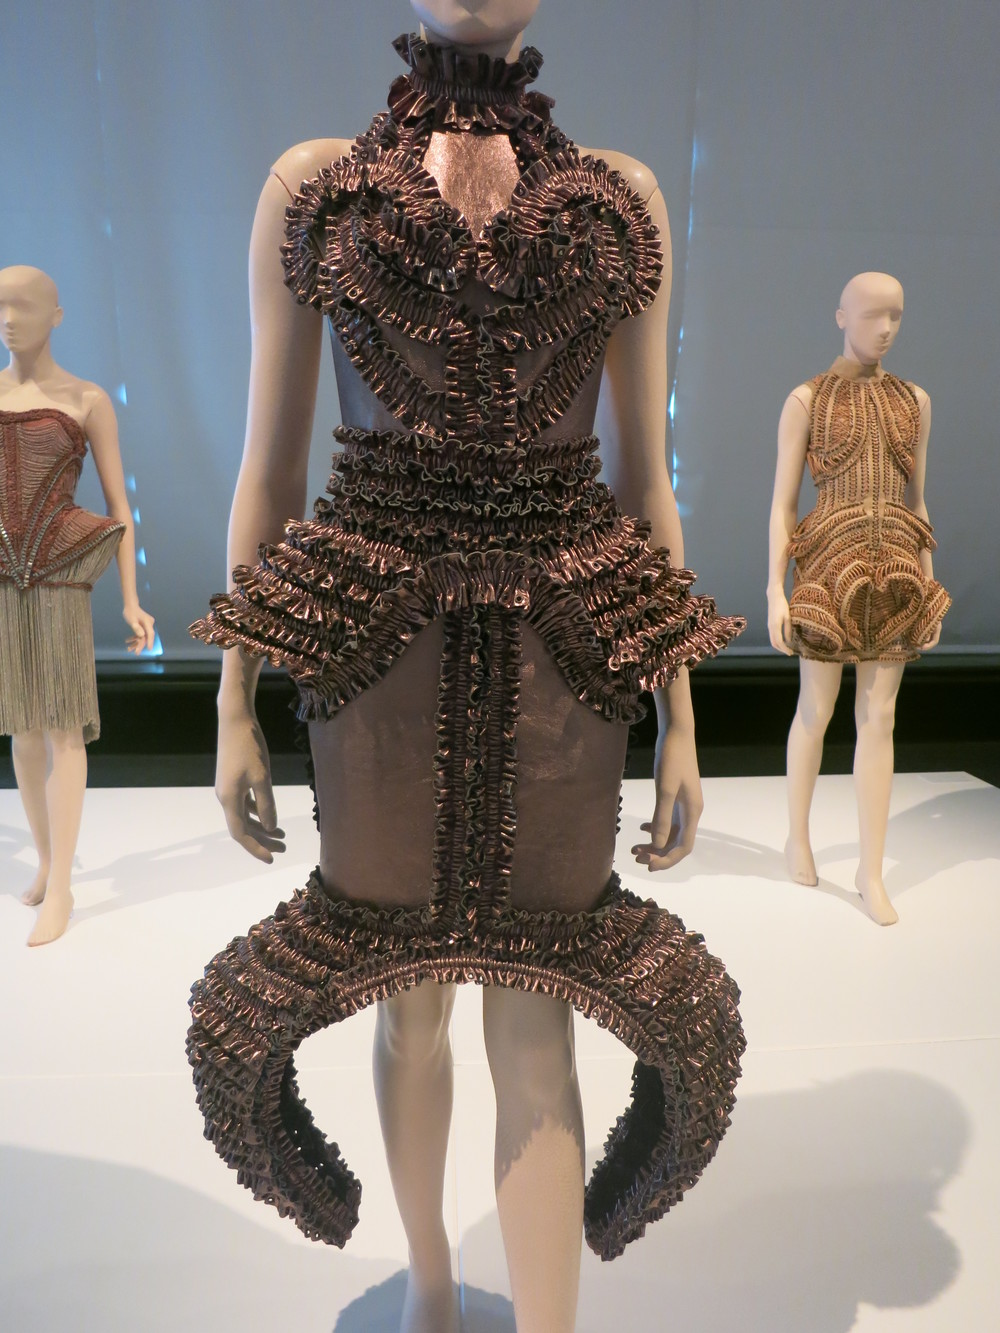 Iris van Herpen exhibition at the Calais Lace Museum 2013 - 'MUMMIFICATION' 2009